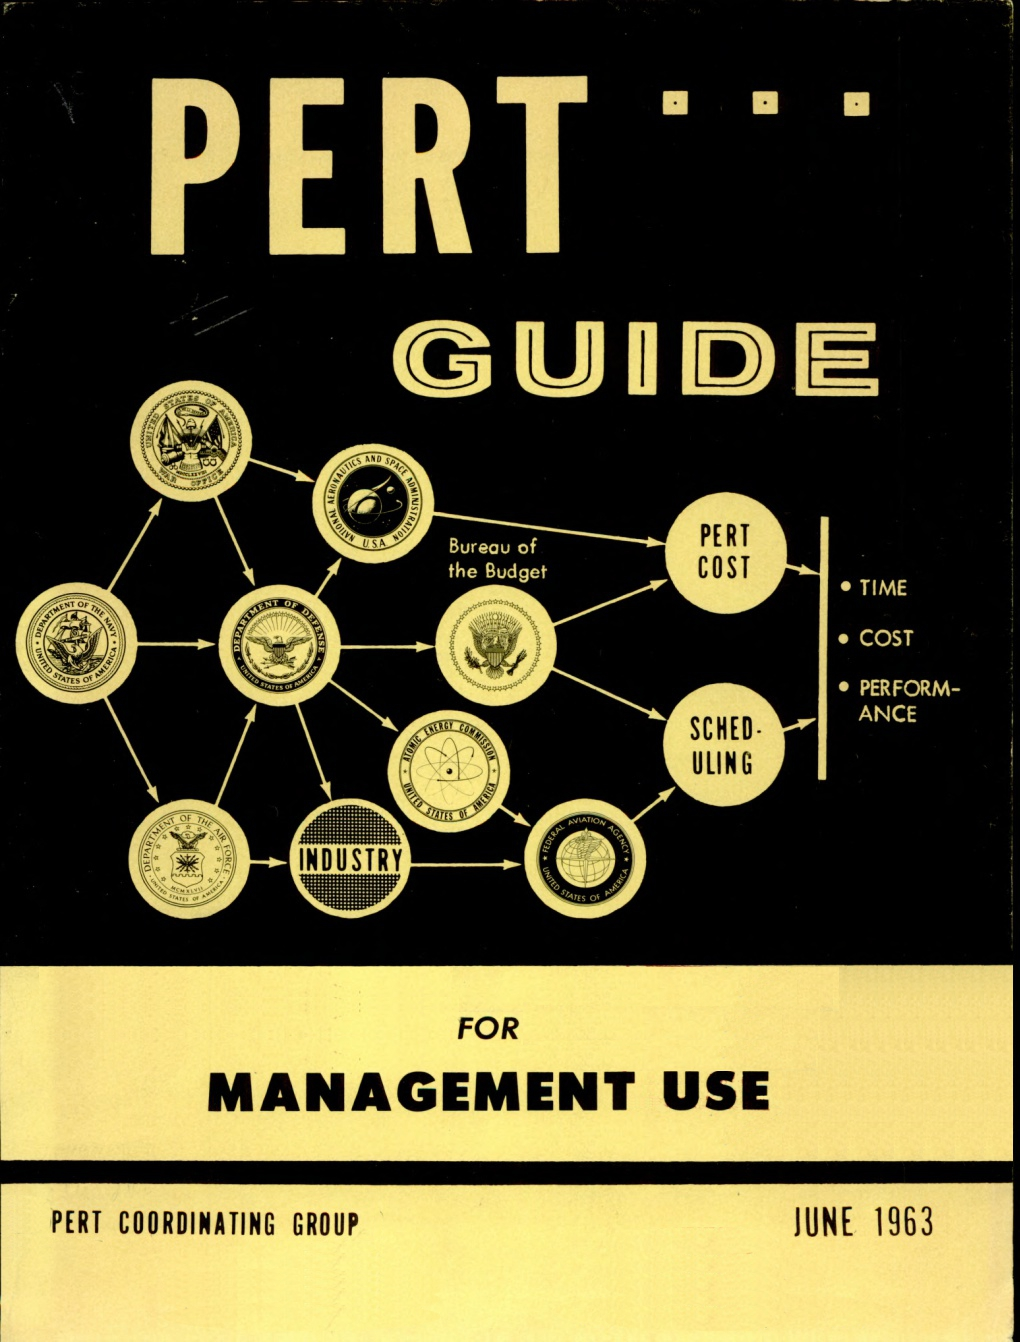 Program evaluation and review technique wikipedia pert guide for management use june 1963 ccuart Images